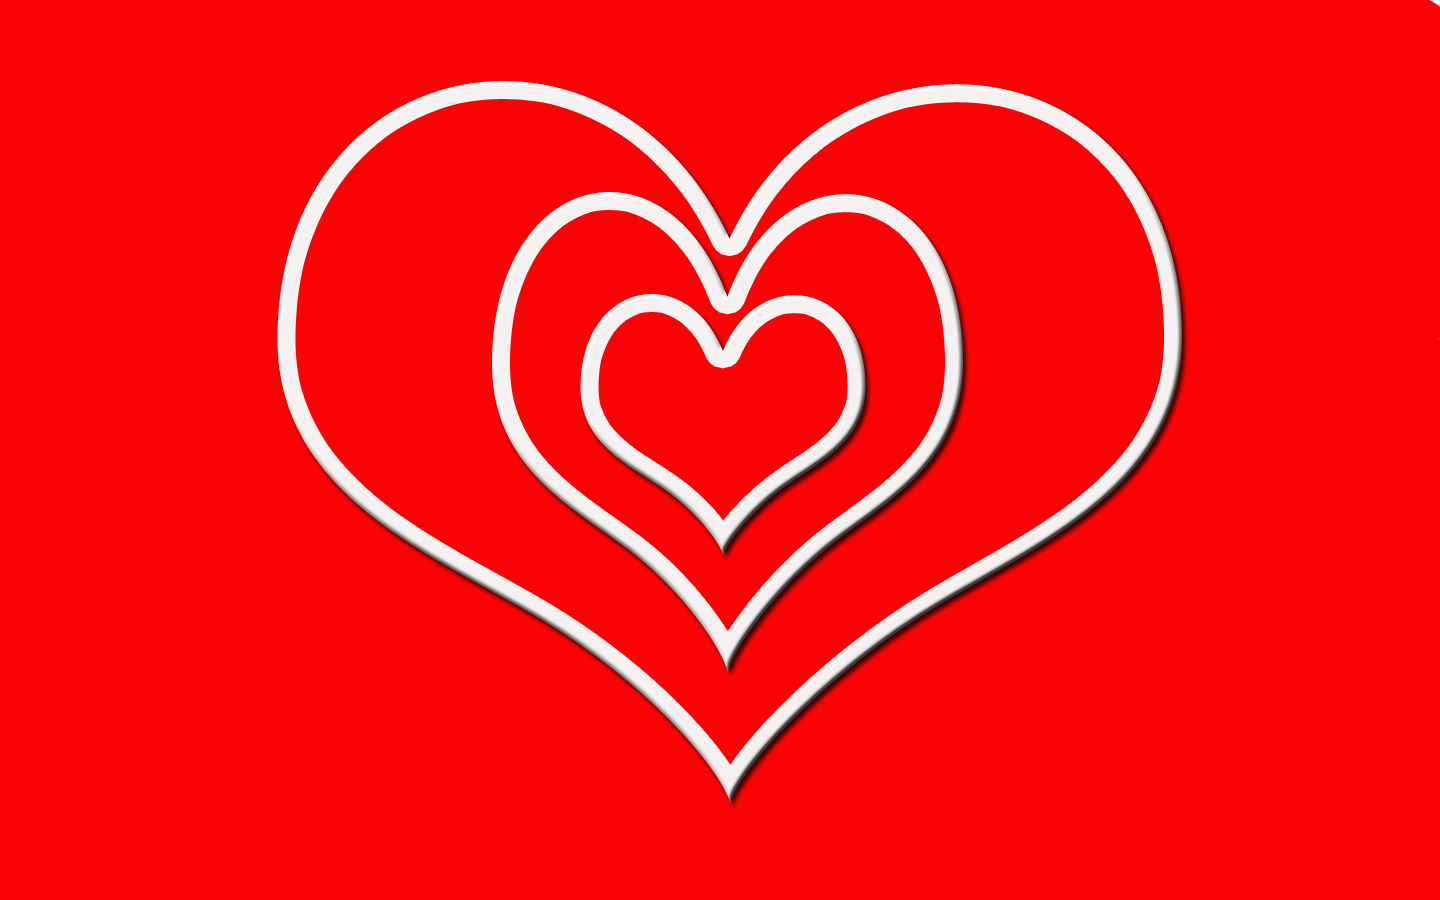 Red Heart Image, Red Heart Background, Red Heart Vector